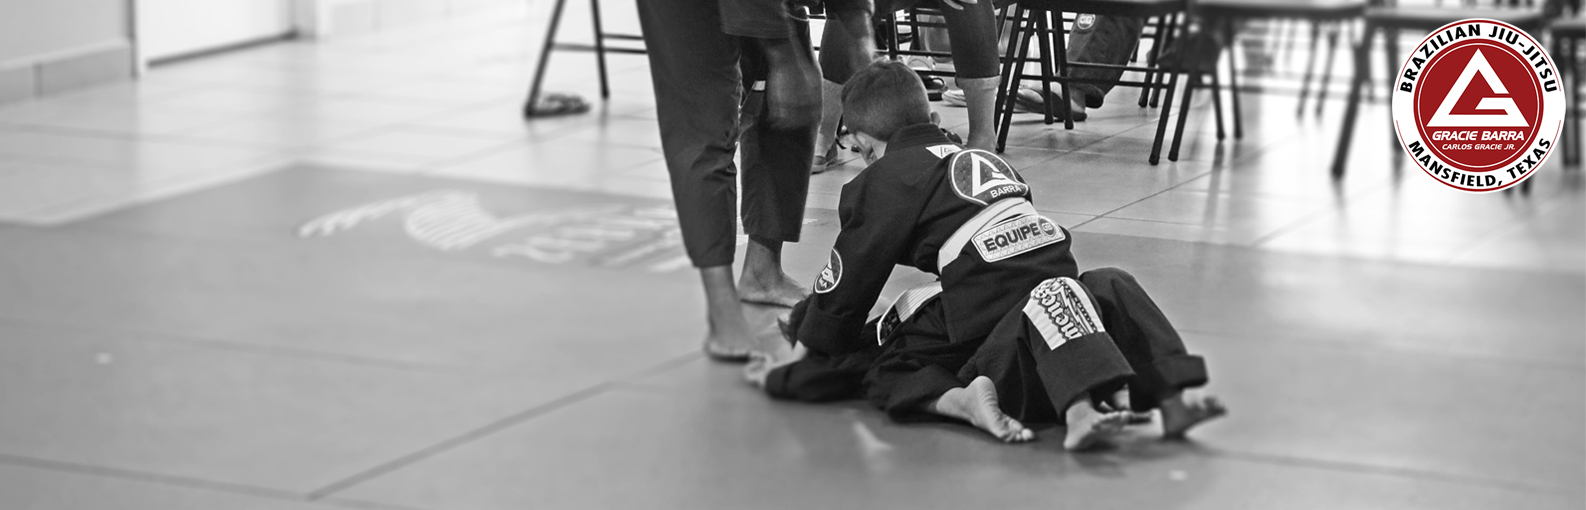 Train Jiu-Jitsu at Gracie Barra Mansfield & Arlington TX